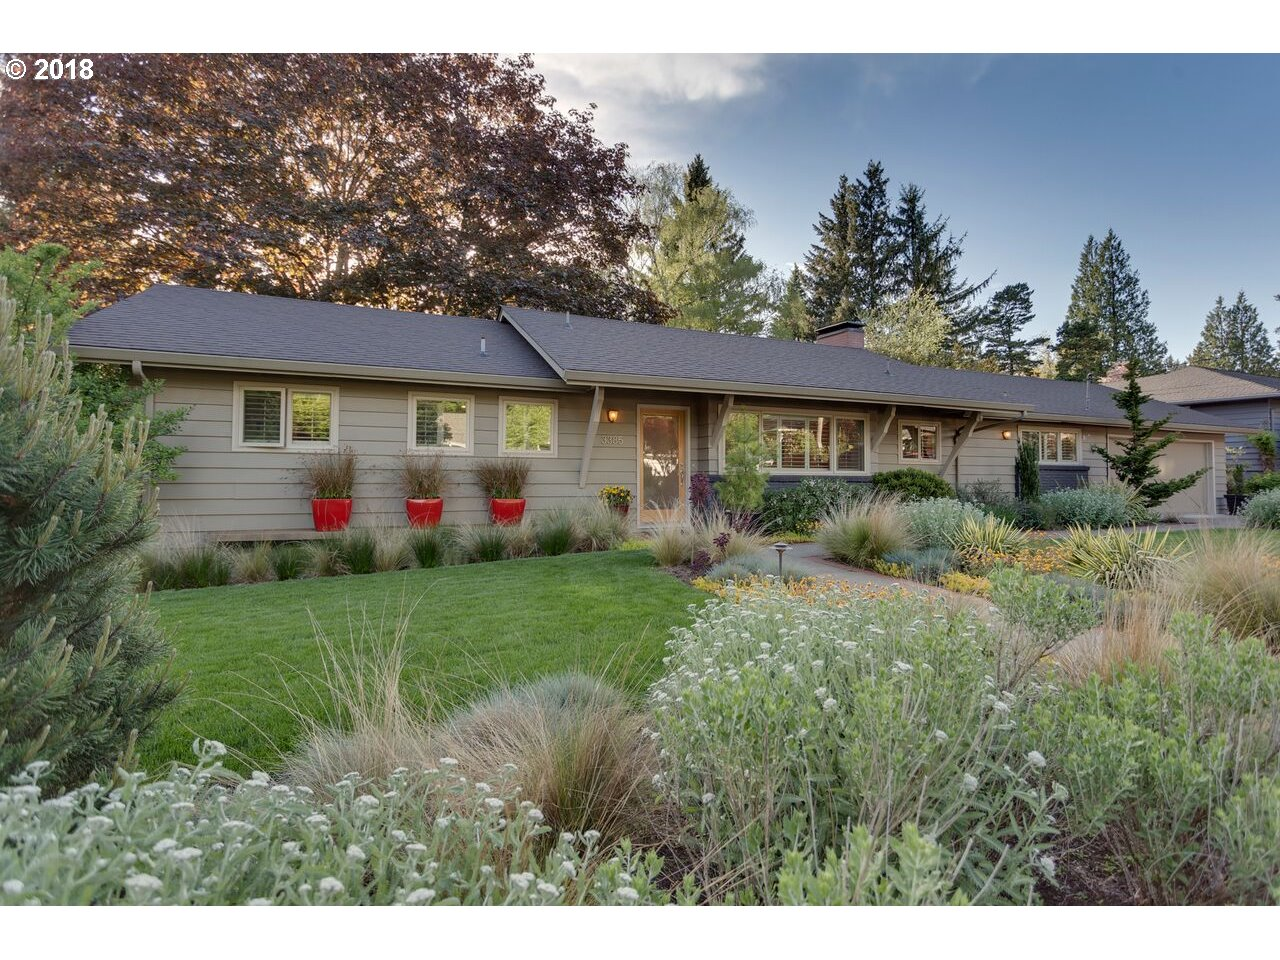 2413 sq. ft 4 bedrooms 3 bathrooms  House For Sale, Portland, OR